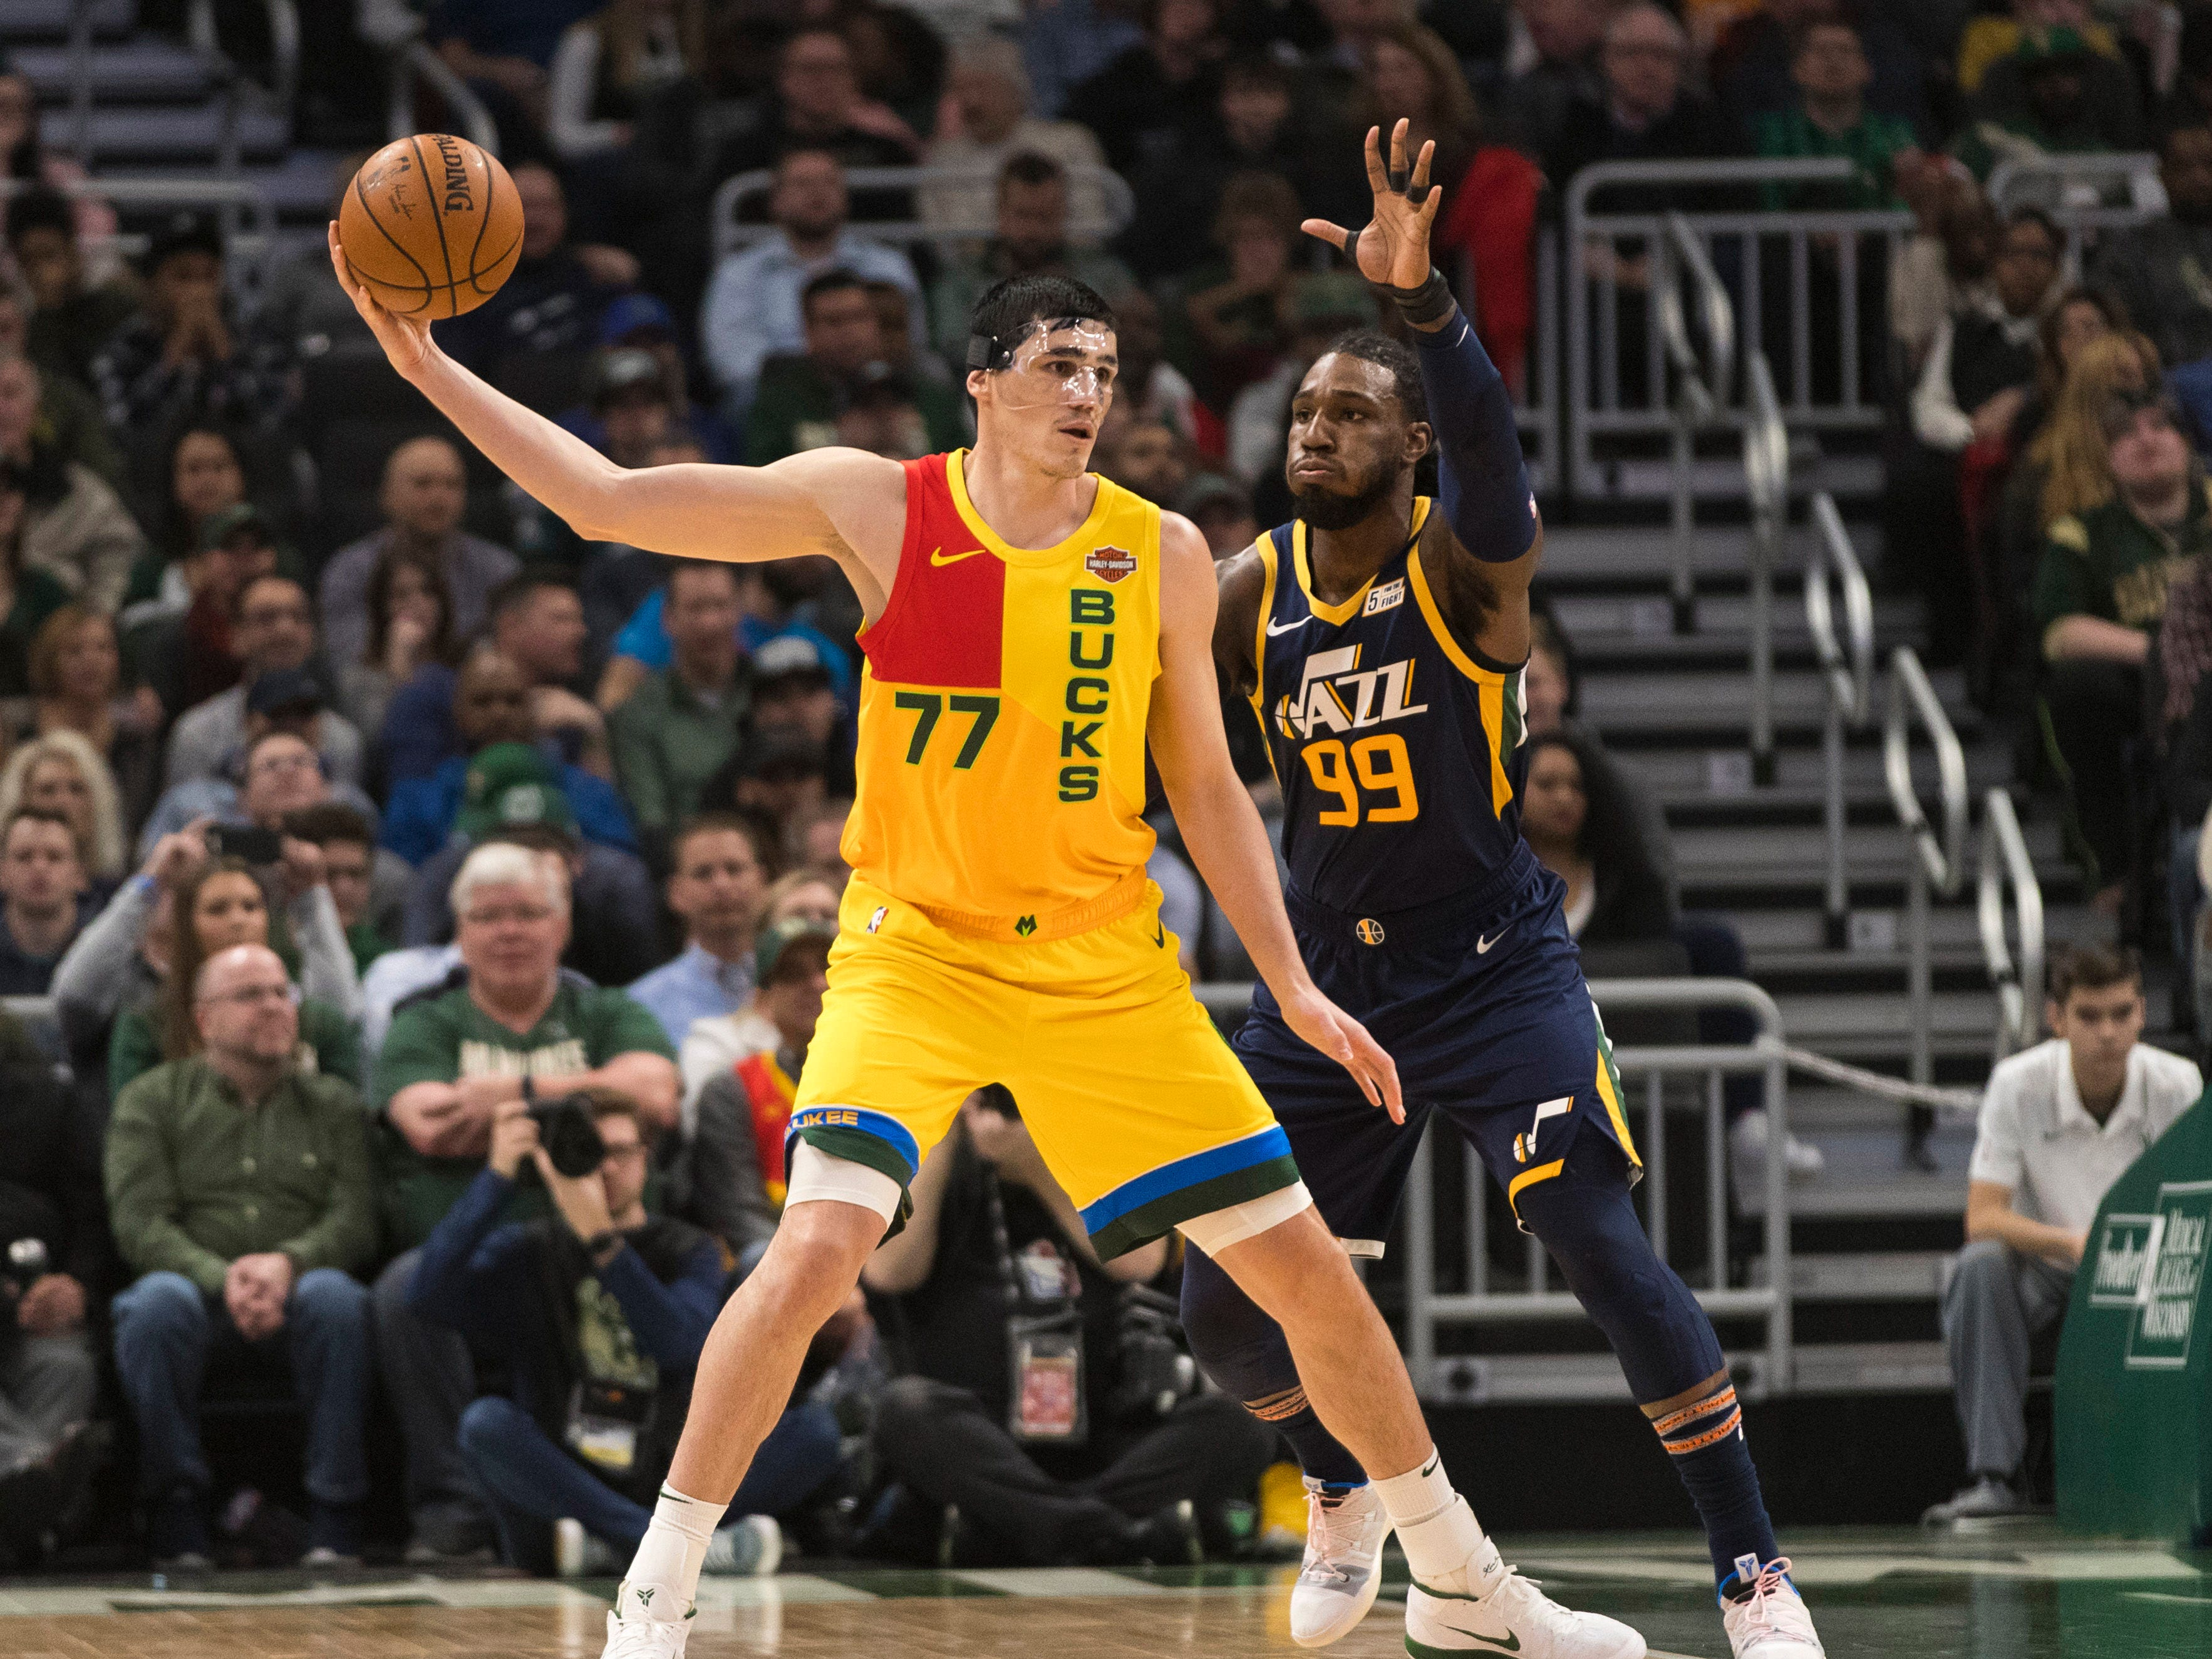 Milwaukee Bucks forward Ersan Ilyasova holds the ball away from Utah Jazz forward Jae Crowder at Fiserv Forum, Jan. 7, 2019 in Milwaukee.